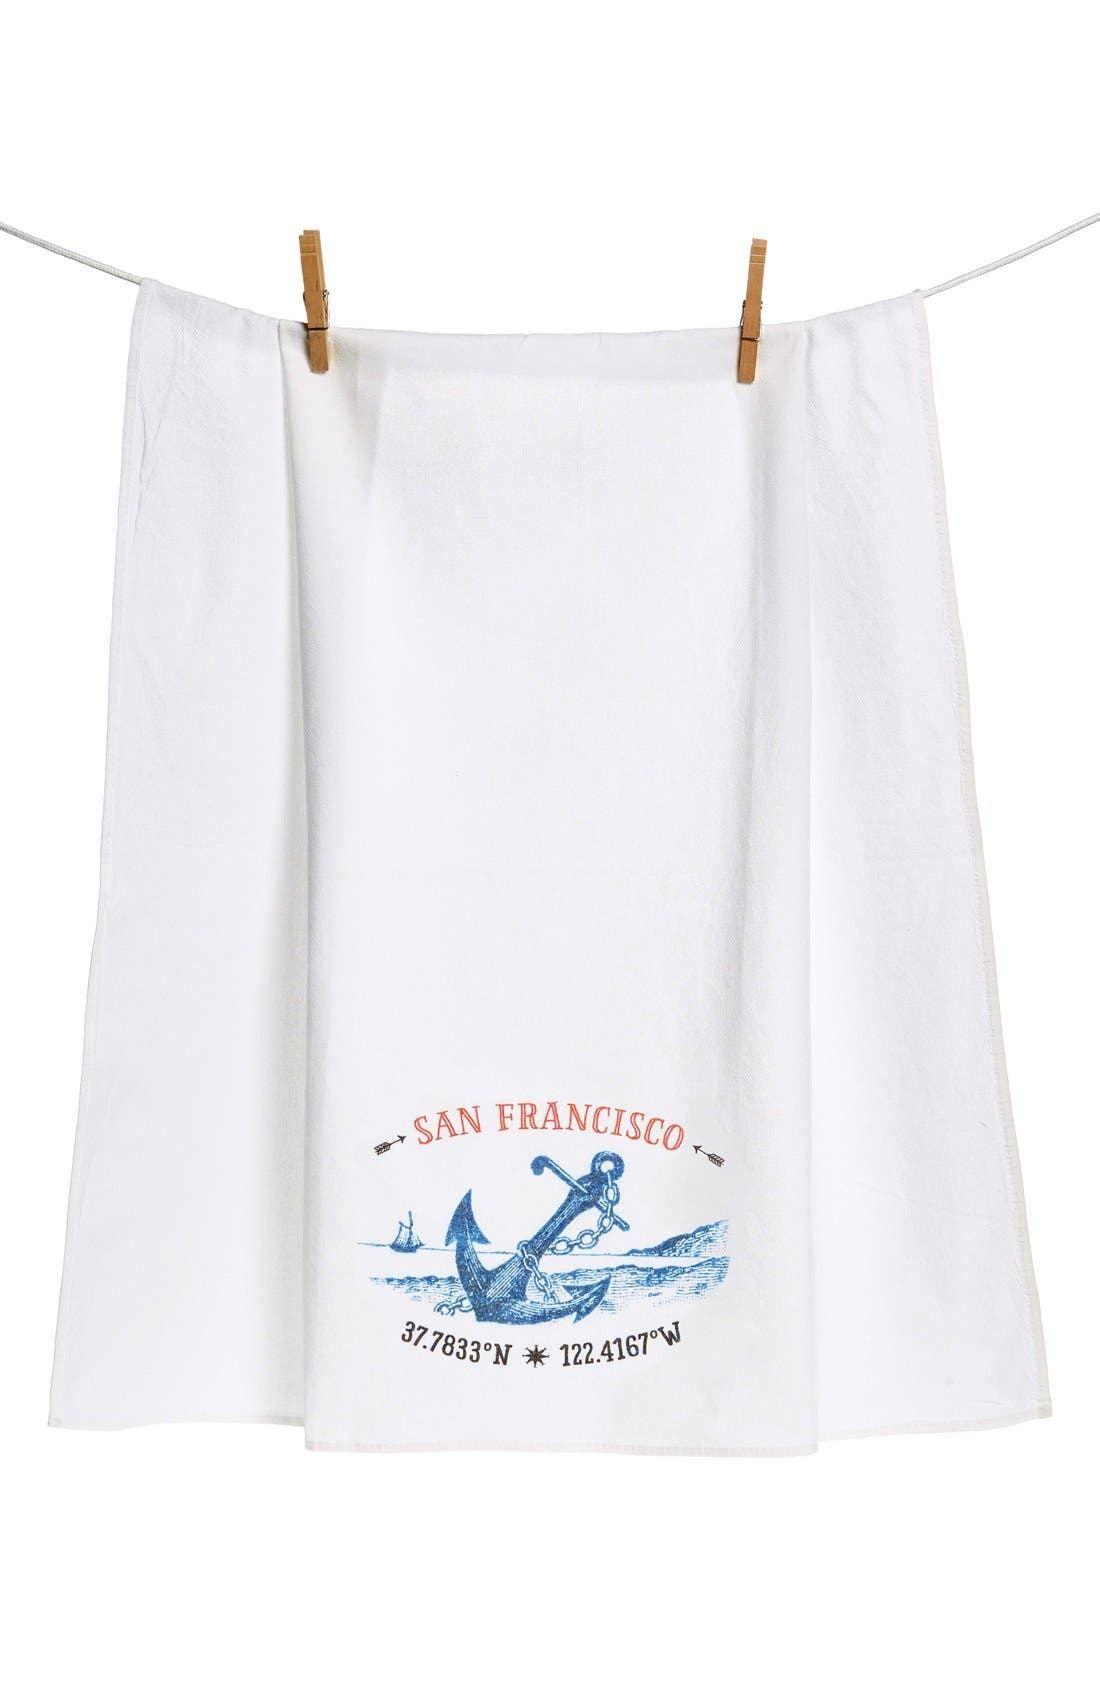 CAMEOS & CROWNS 'City' Flour Sack Towel